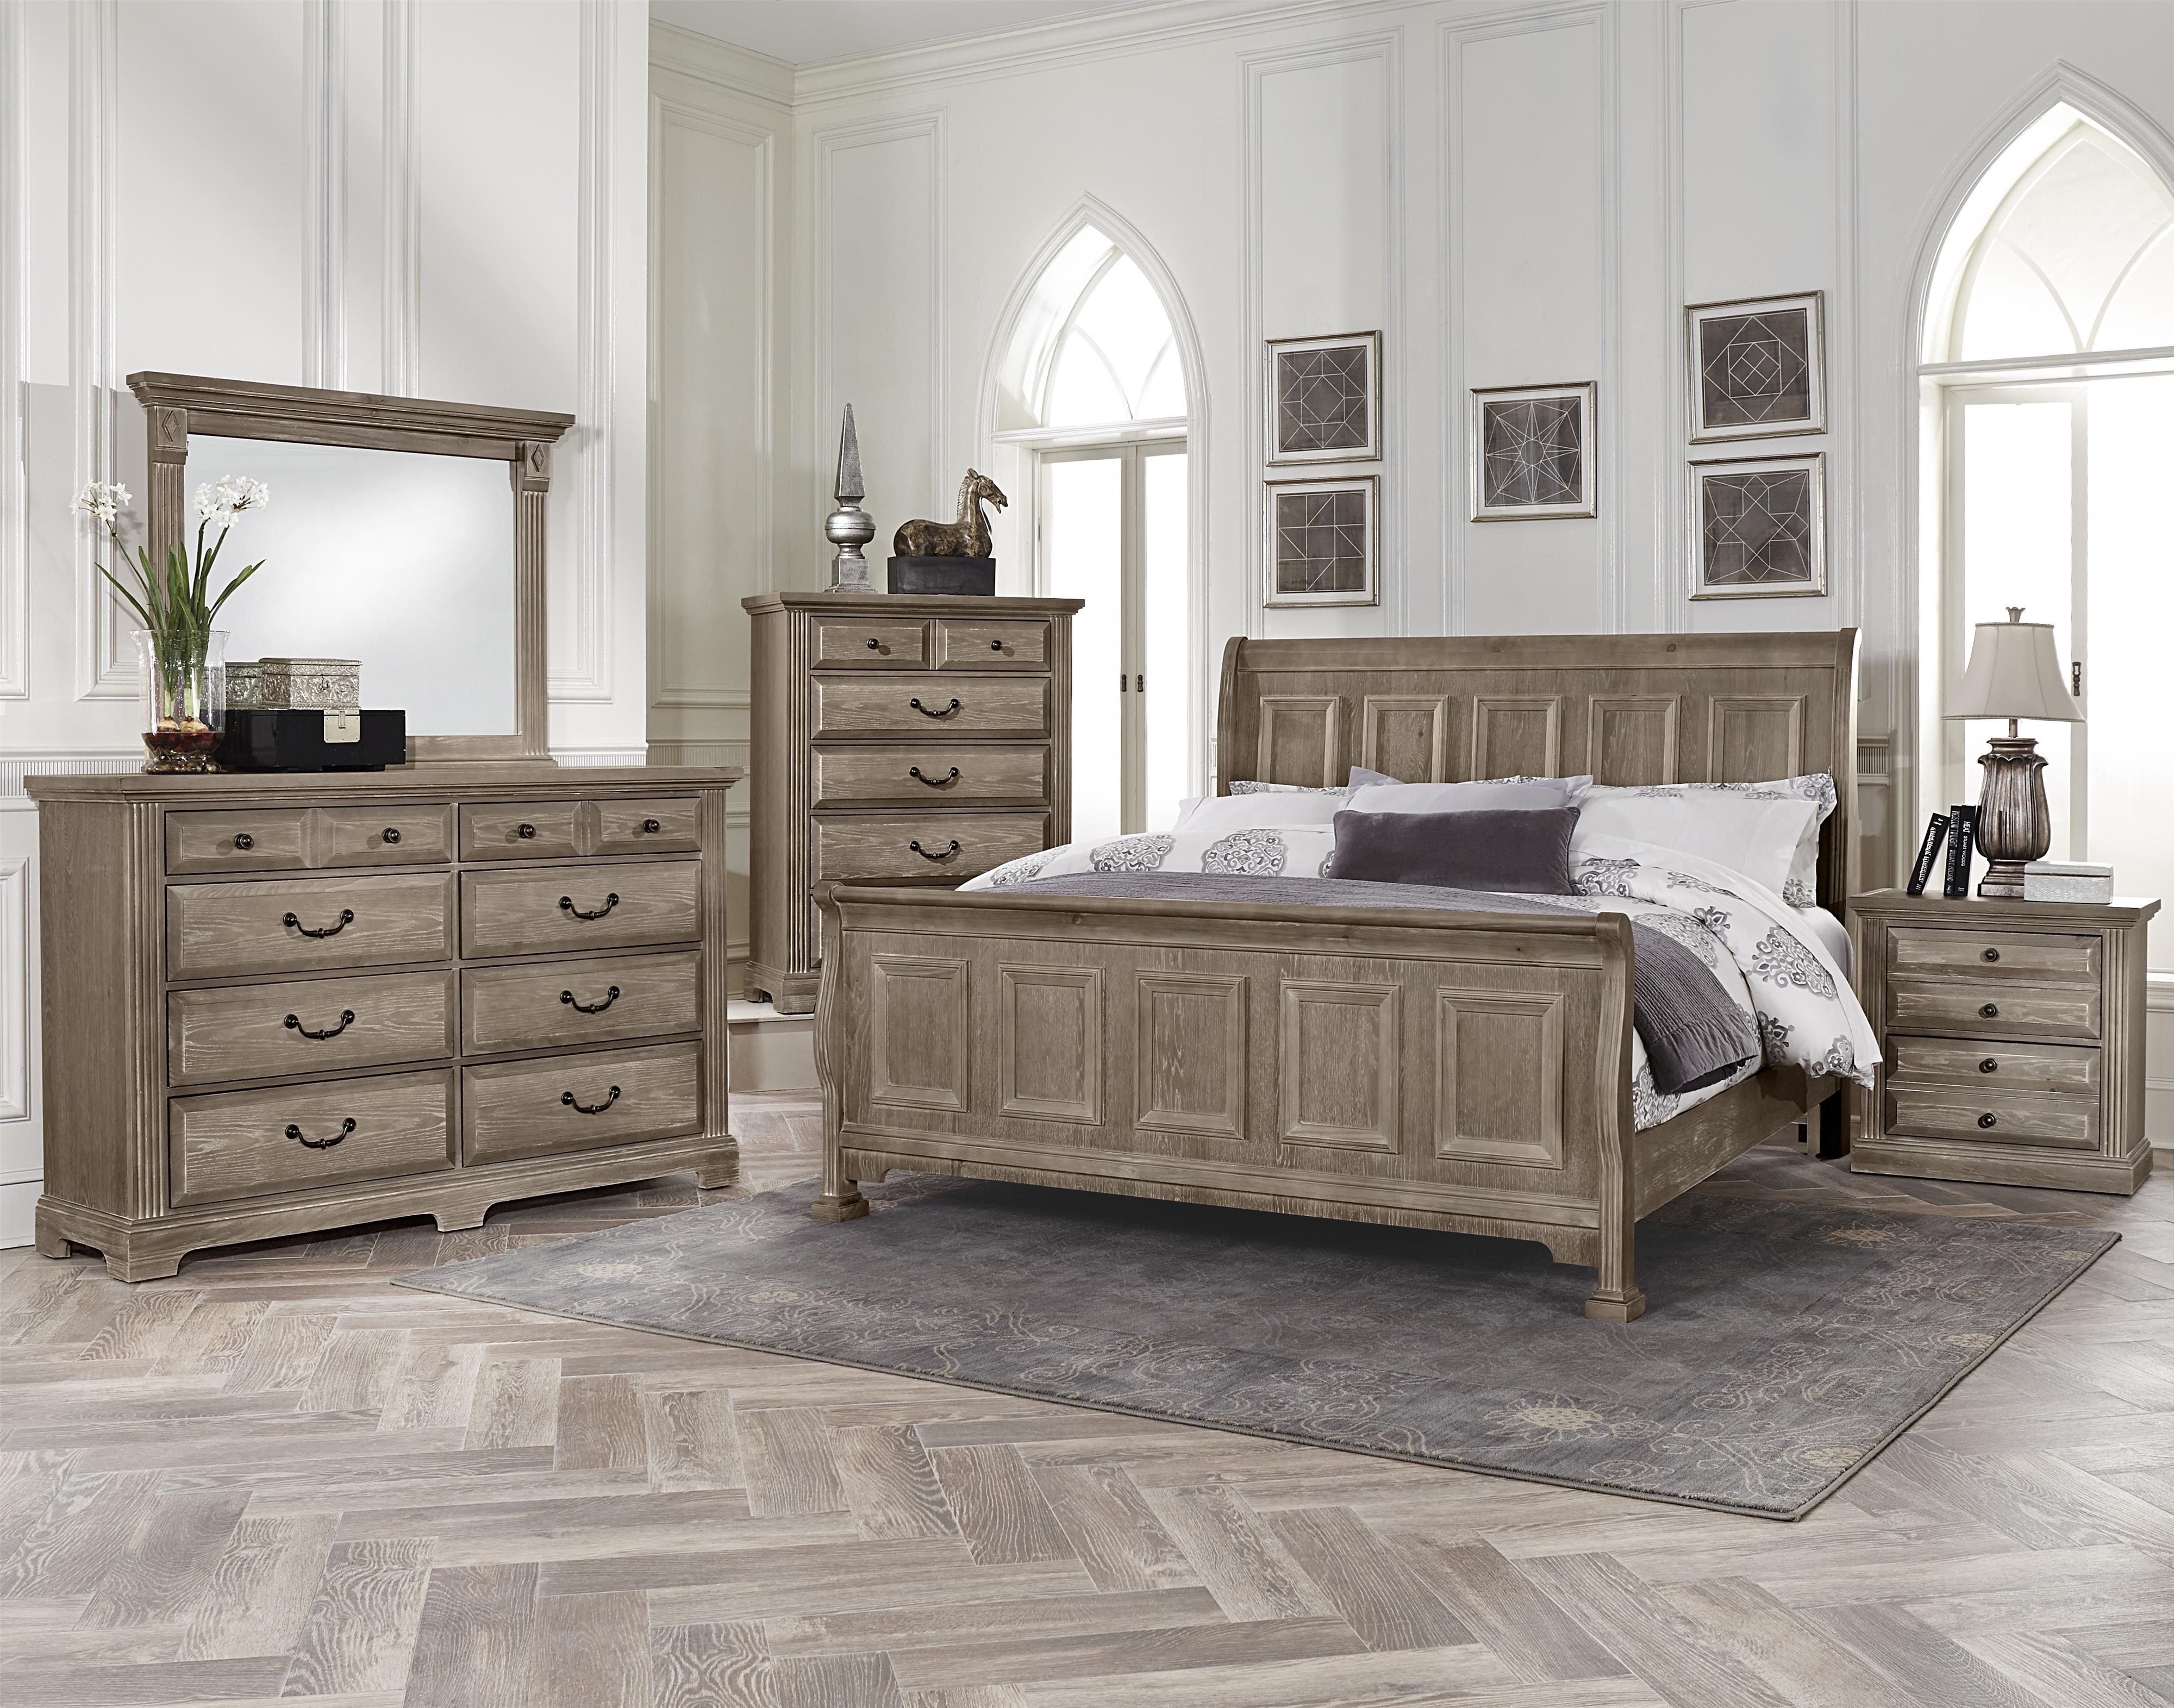 Vaughan bassett woodlands bb96 226 transitional night stand 2 drawers great american home for Discontinued bassett bedroom furniture